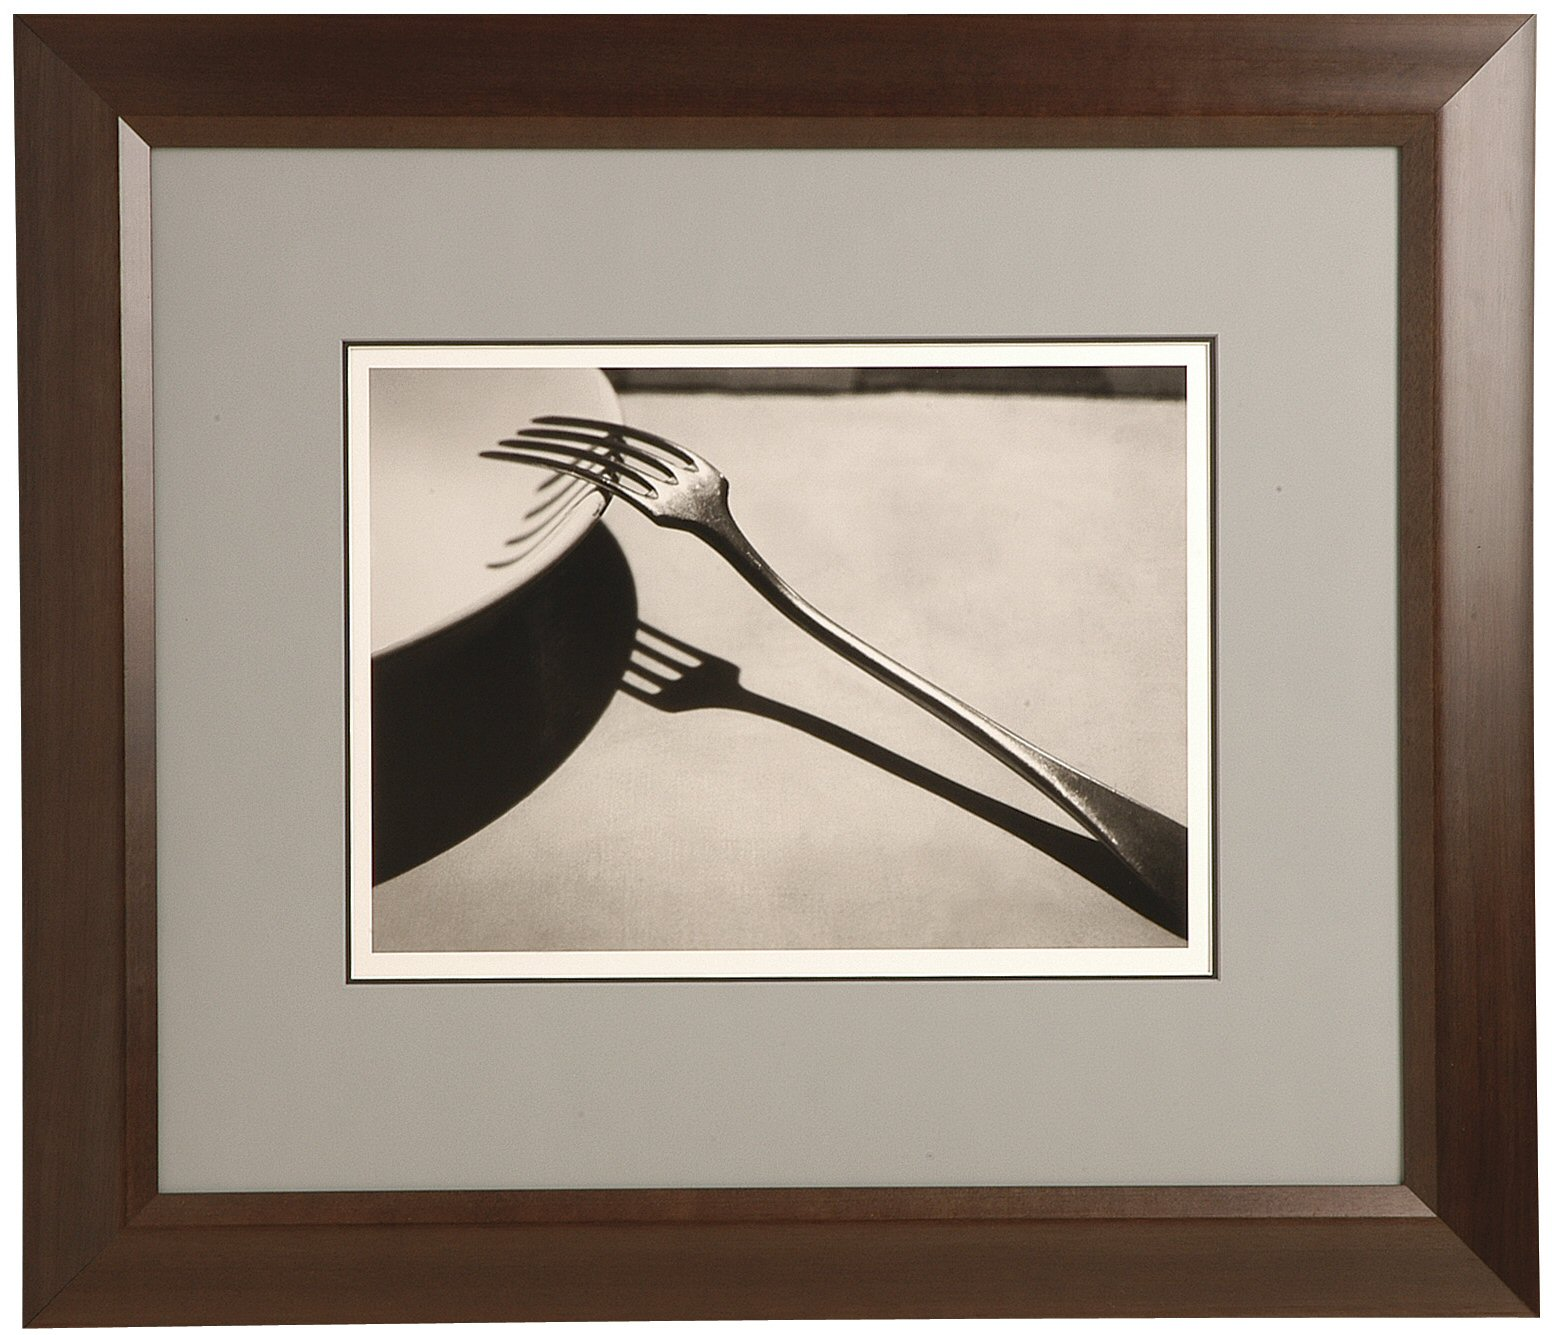 Frame And Matted Galleryimage Co